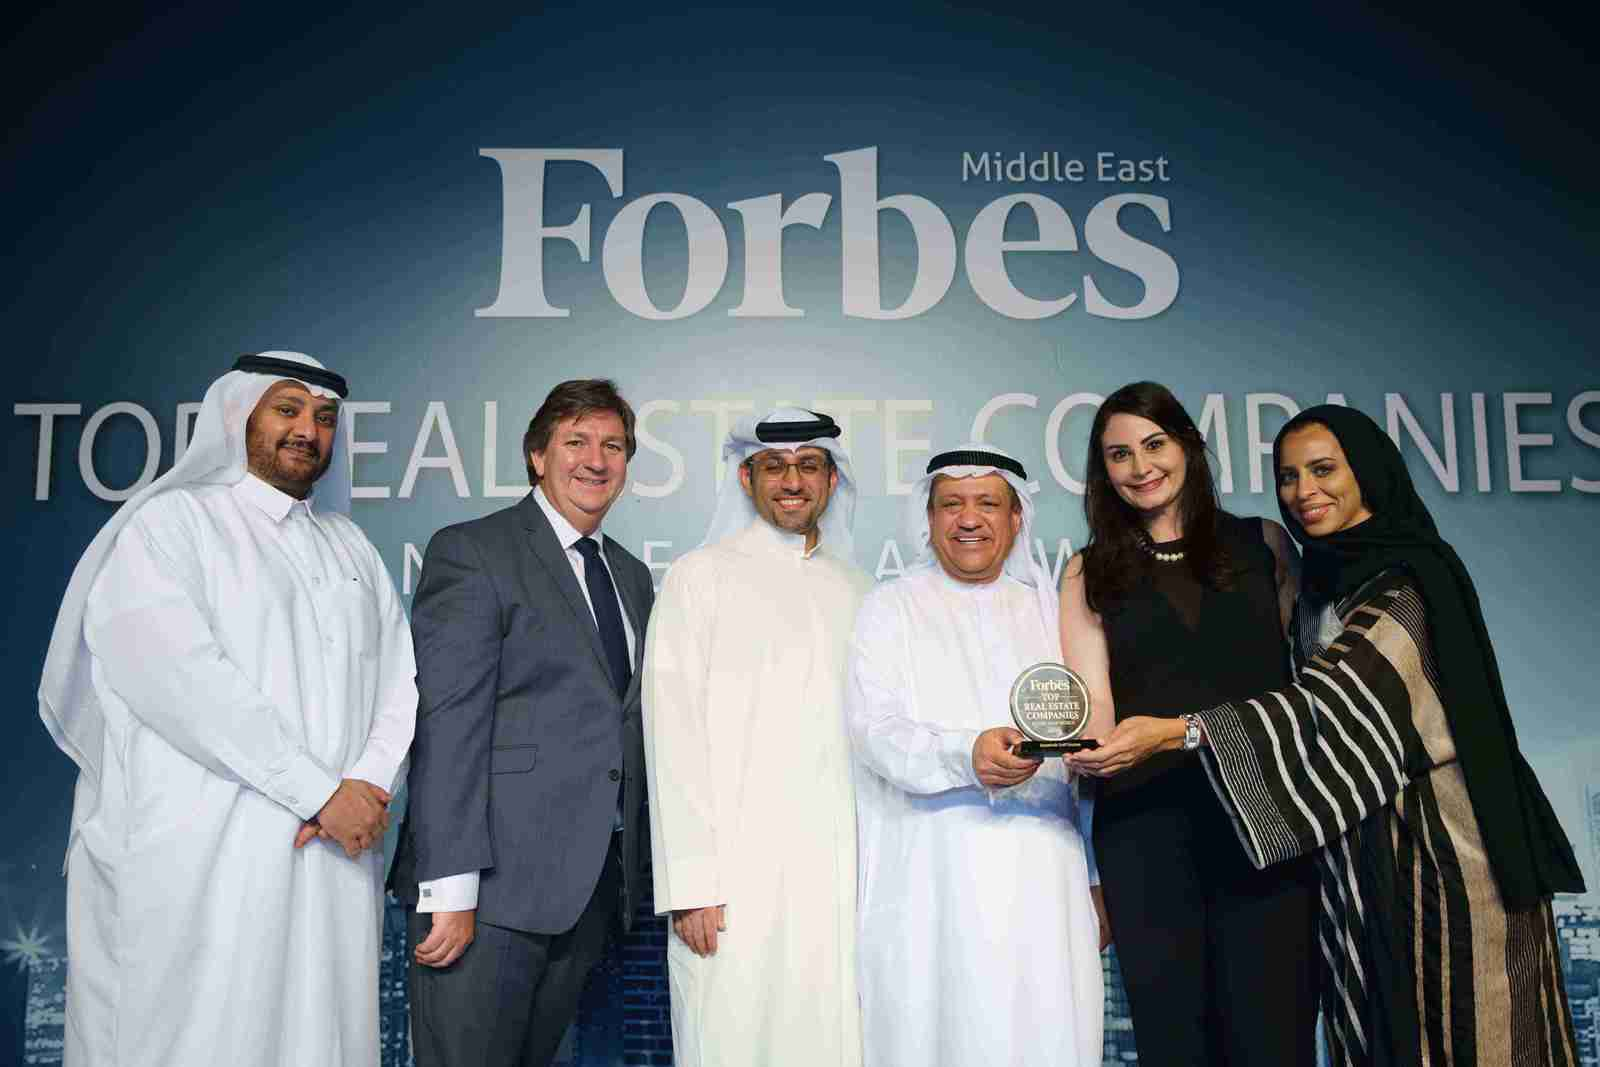 Jumeirah Golf Estates recognized as a Top Real Estate Company in the Arab World